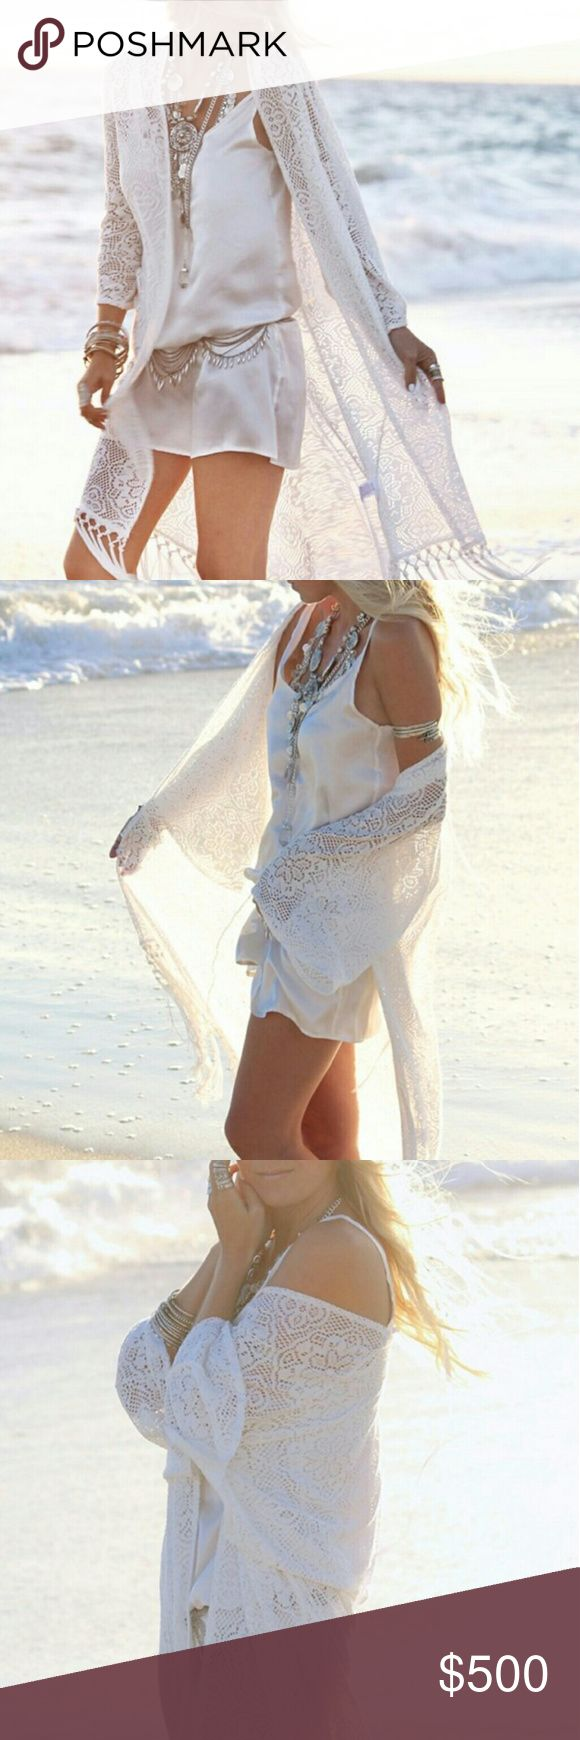 """COMING SOON Lace & Fringe Kimono Cardigan Coming soon! """"Like"""" to be notified when item is in stock! Tops"""